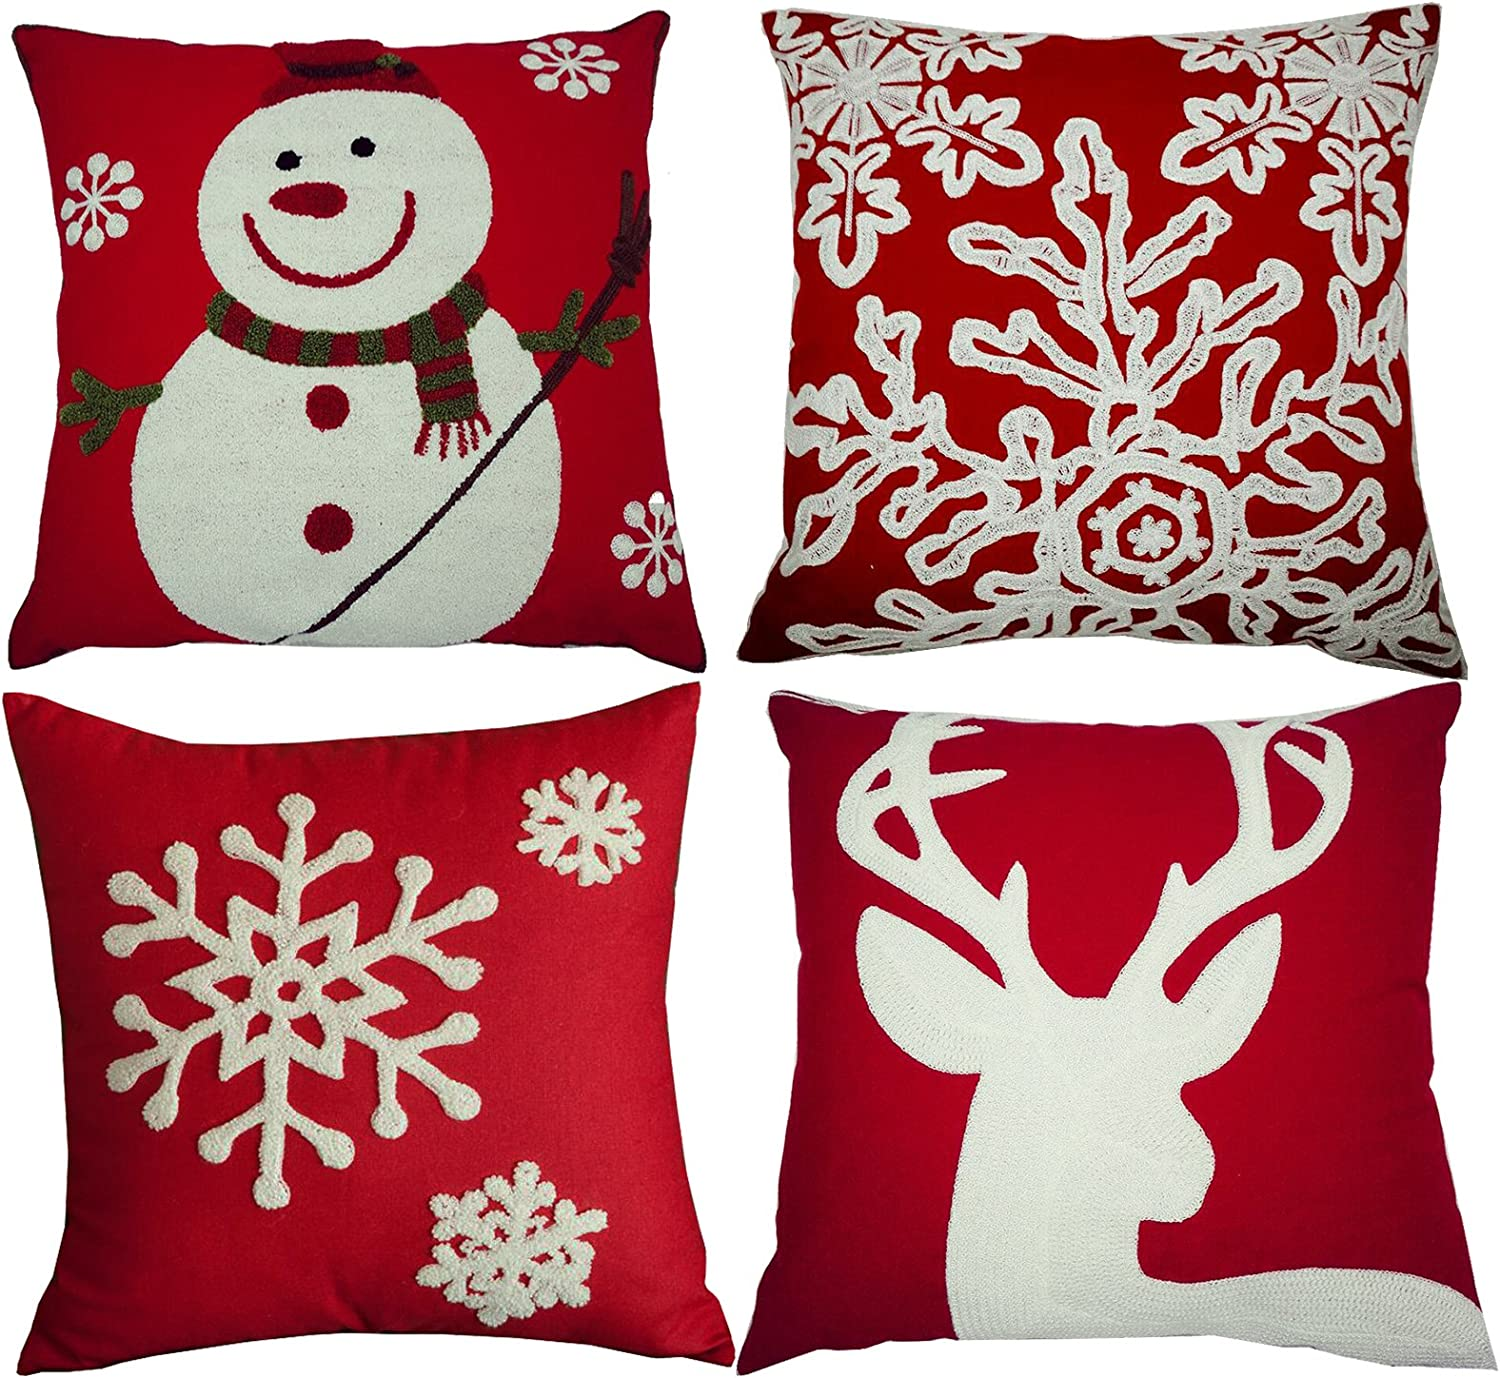 embroidered christmas pillowcase